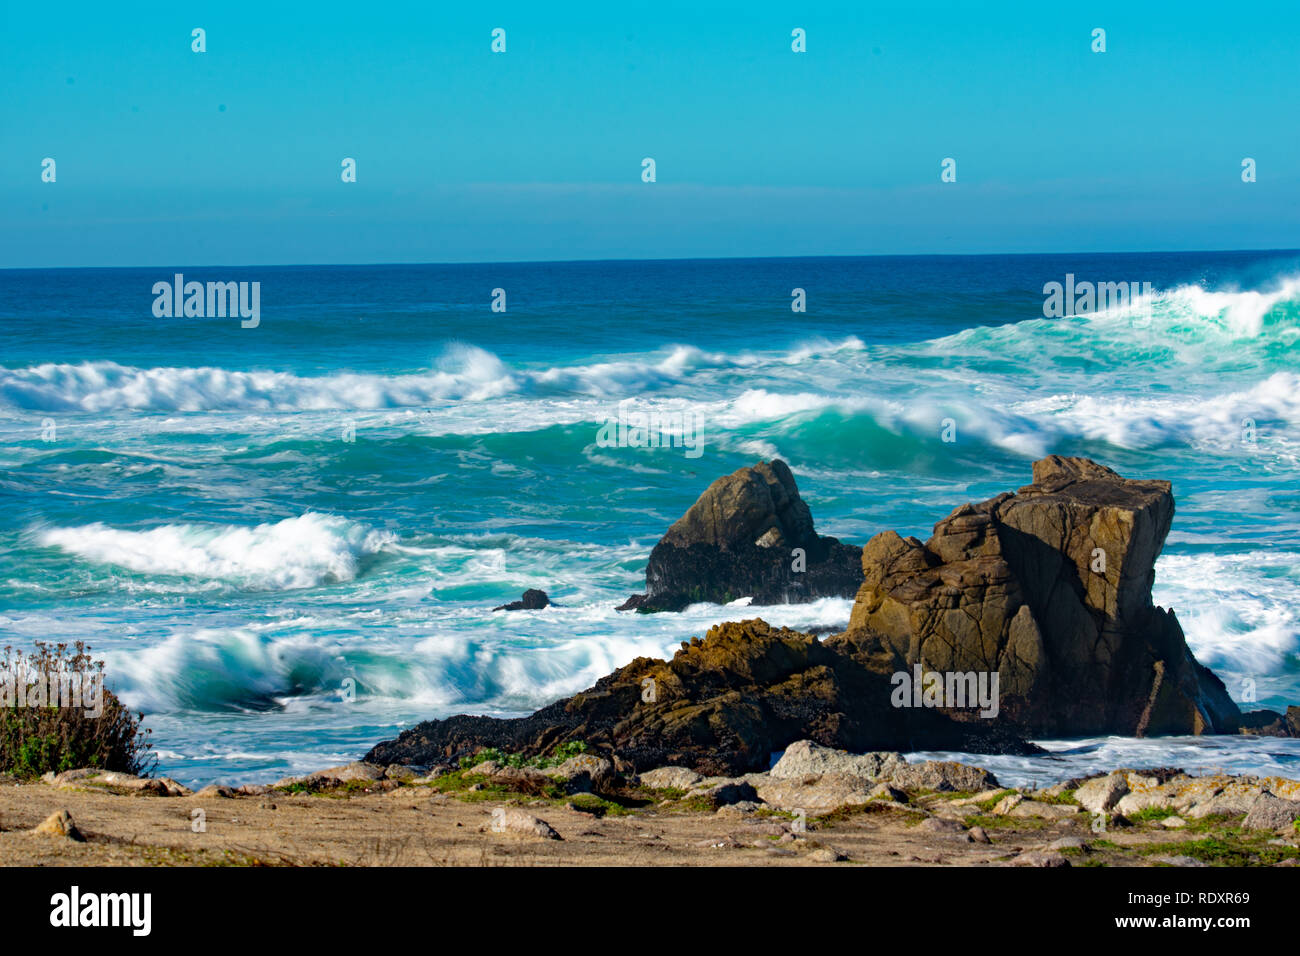 The best place on earth. Down by the seashore where you can be free. peace love and prosperity.my slice of heaven. - Stock Image